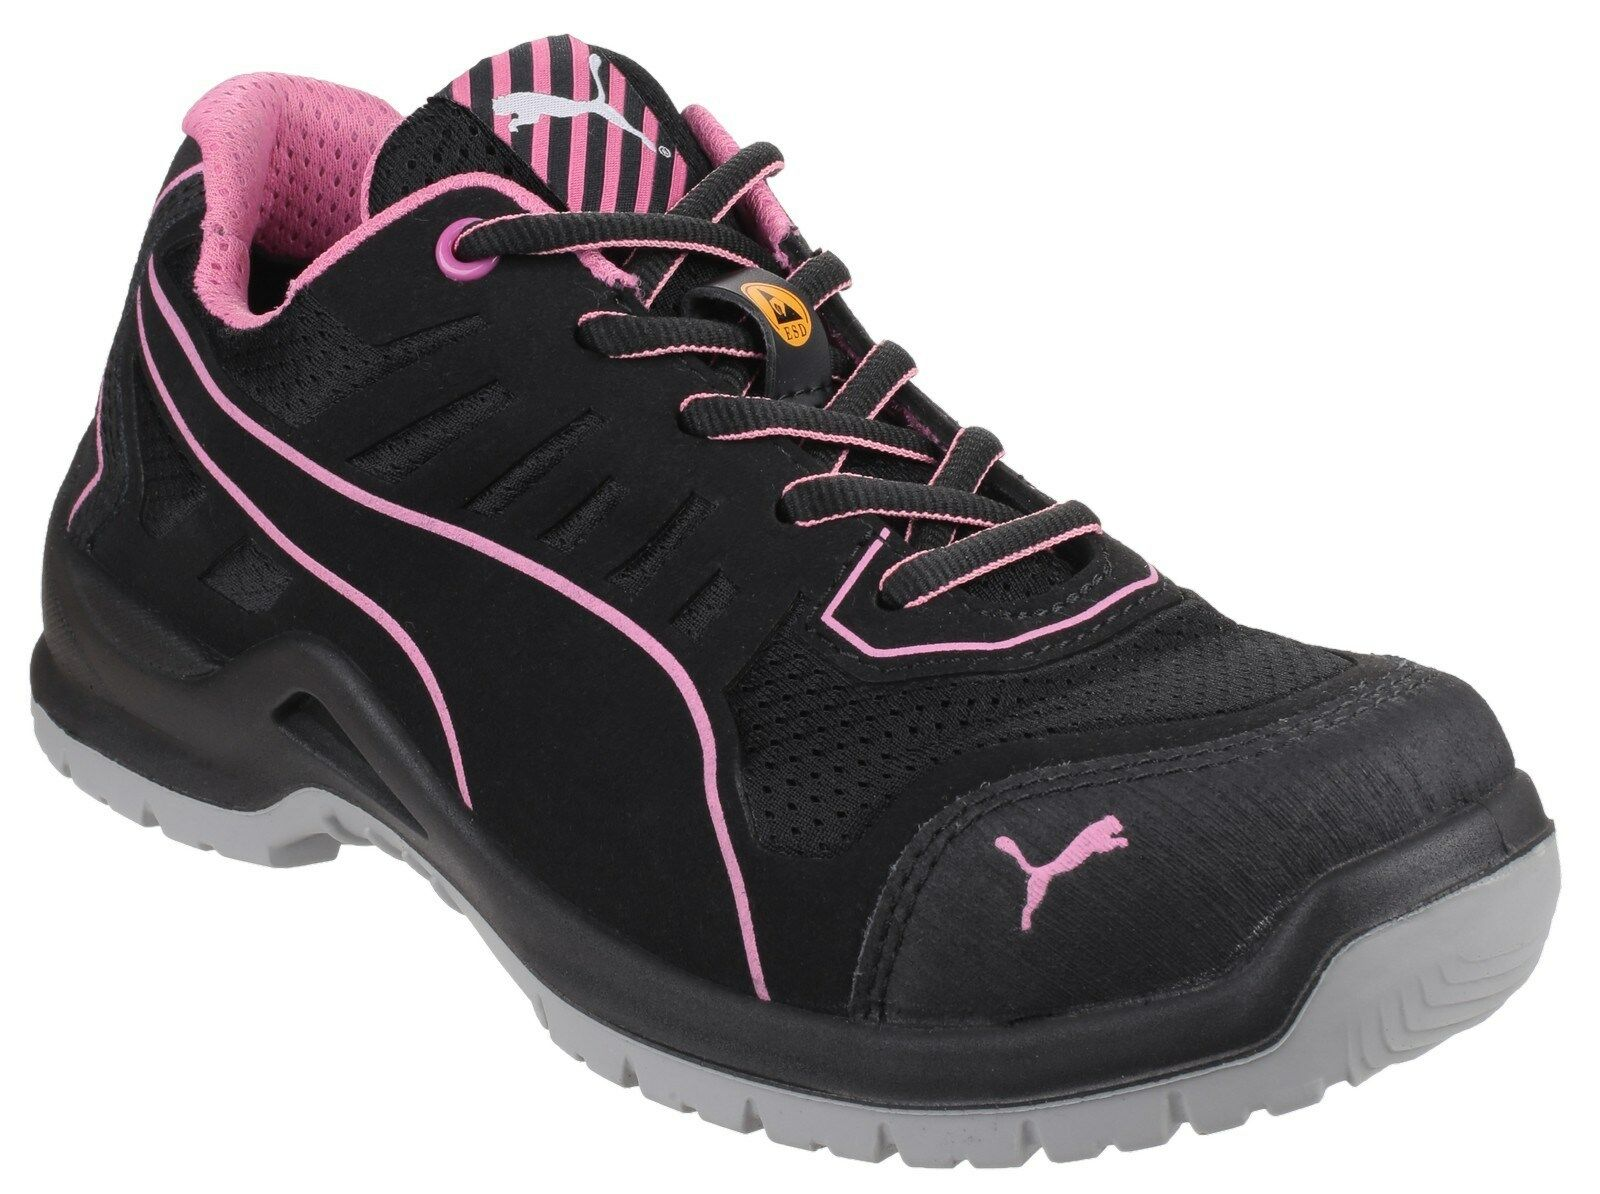 Puma Fuse TC Pink faible Safety Femme Industrial Work Trainers chaussures UK3-8